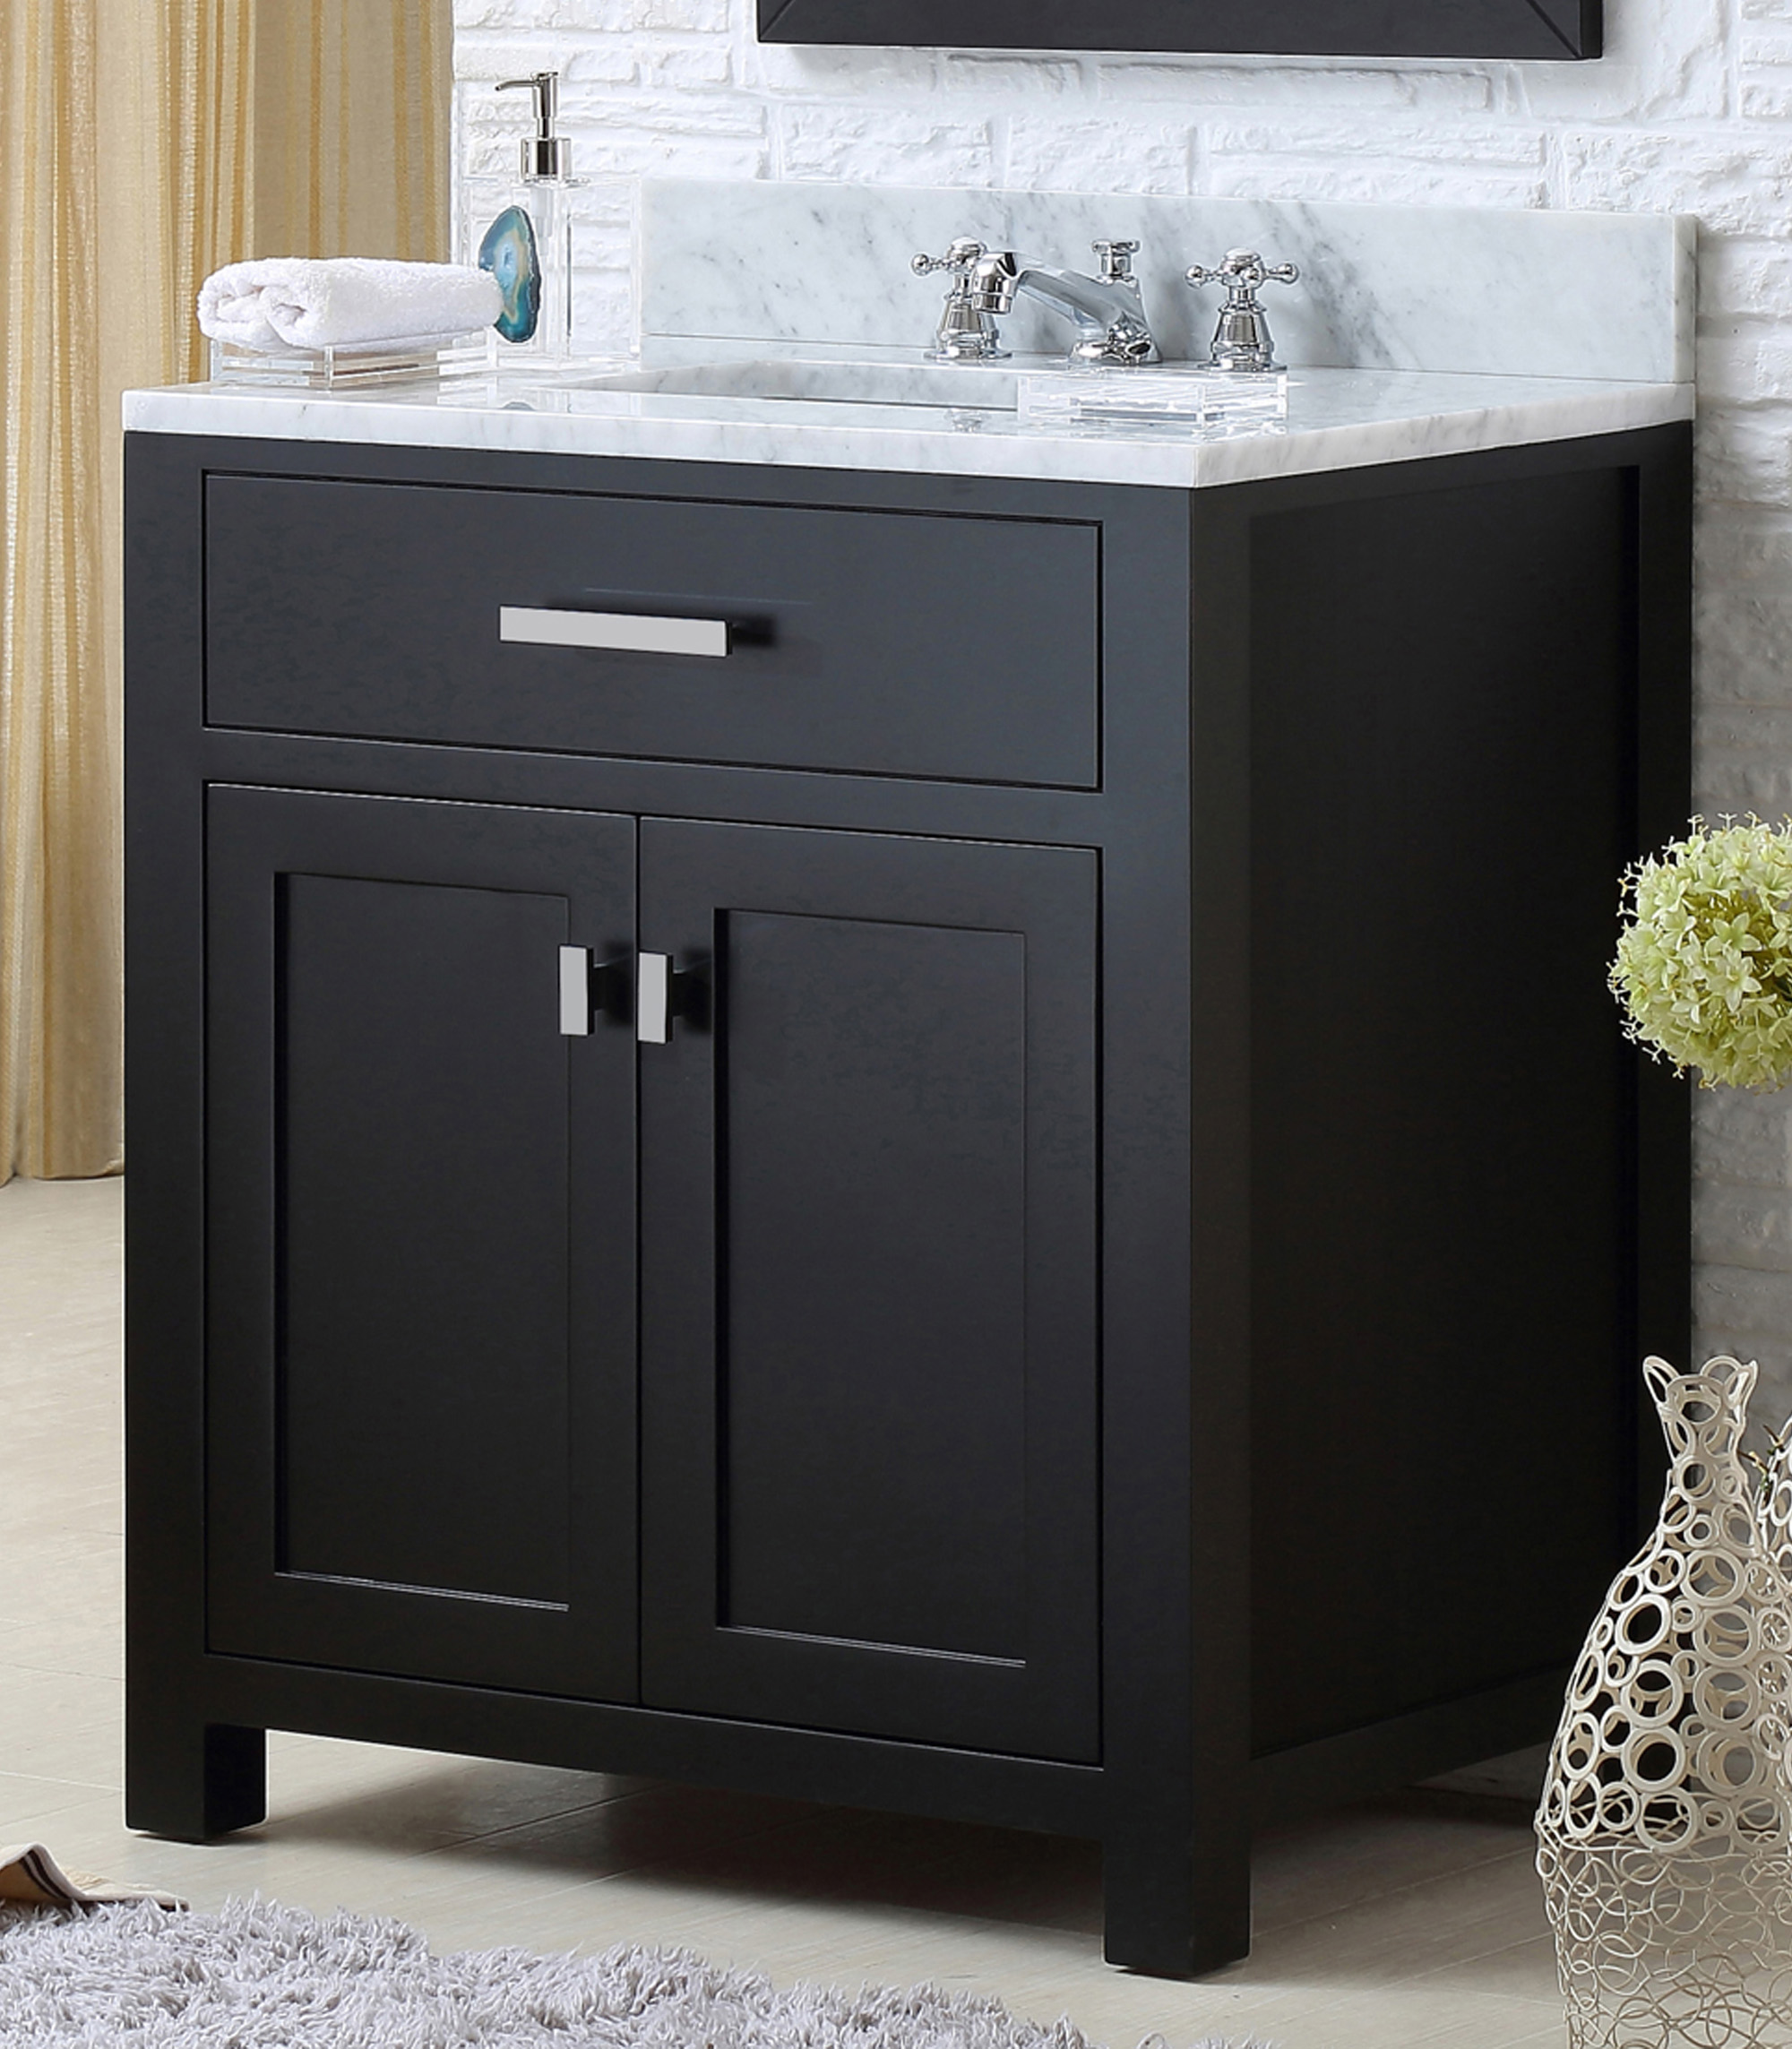 "30"" Espresso Single Sink Bathroom Vanity with White Carrara Marble Top"